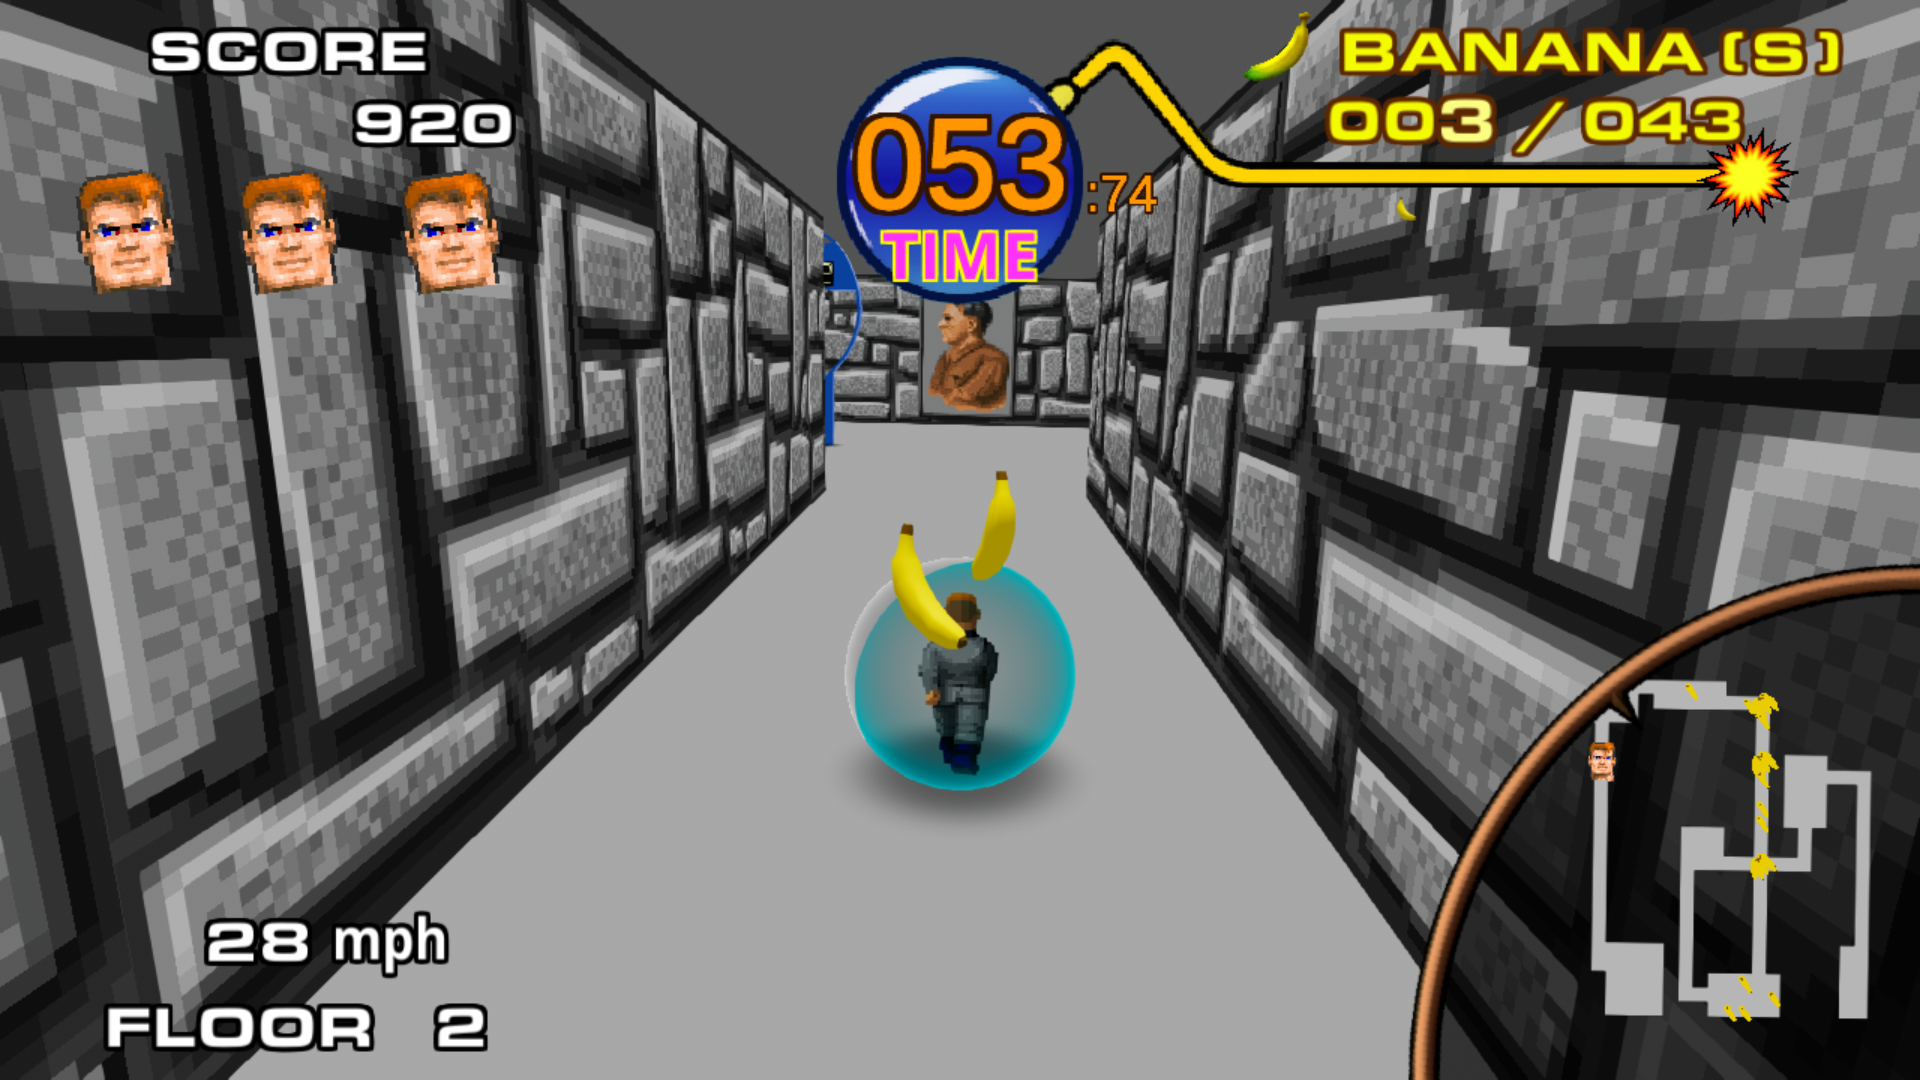 Return to Castle Monkey Ball is exactly what you think it is